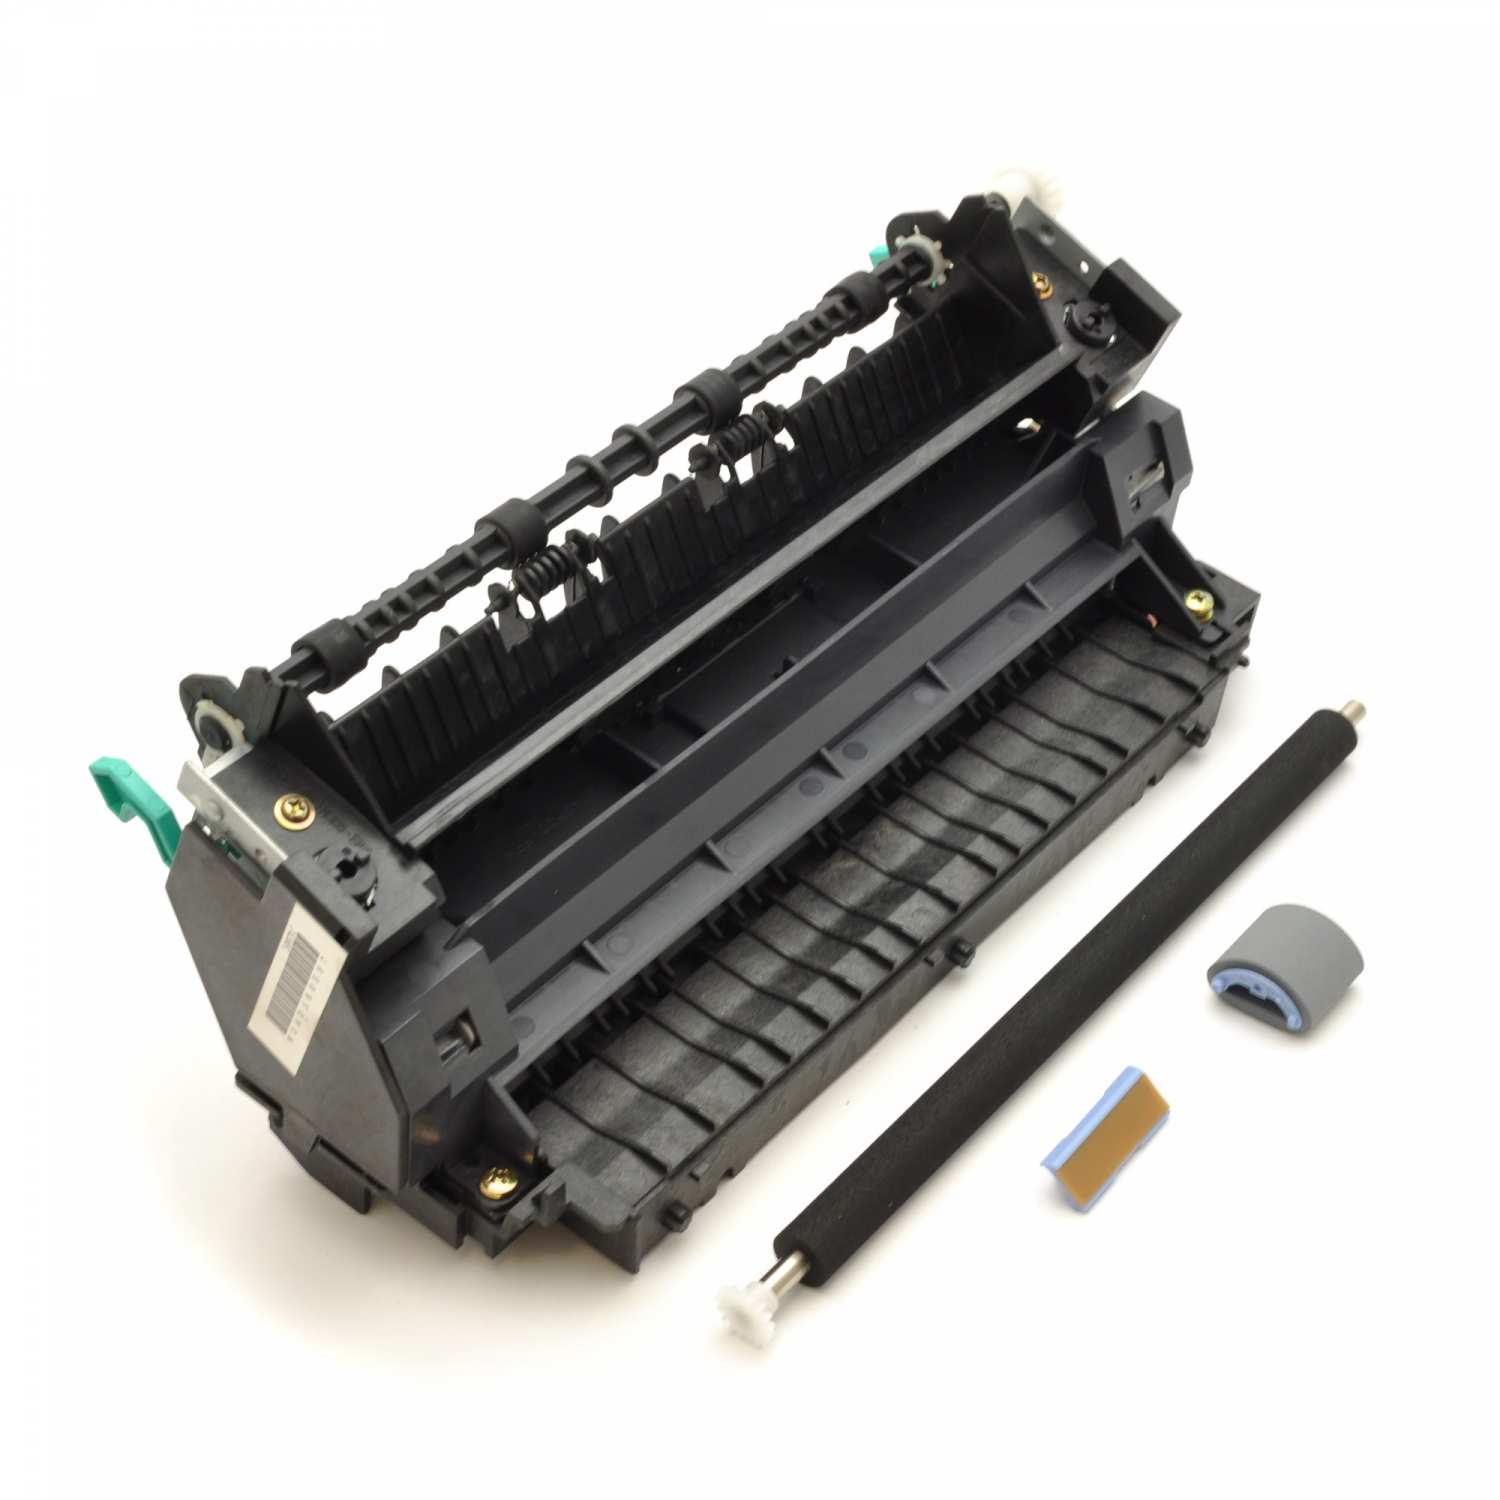 Printel Refurbished MK-1200-110 Maintenance Kit (110V) for HP LaserJet 1000, 1200, 1220, 3300, 3310, 3320, 3330, with RG9-1493-000 Fuser included